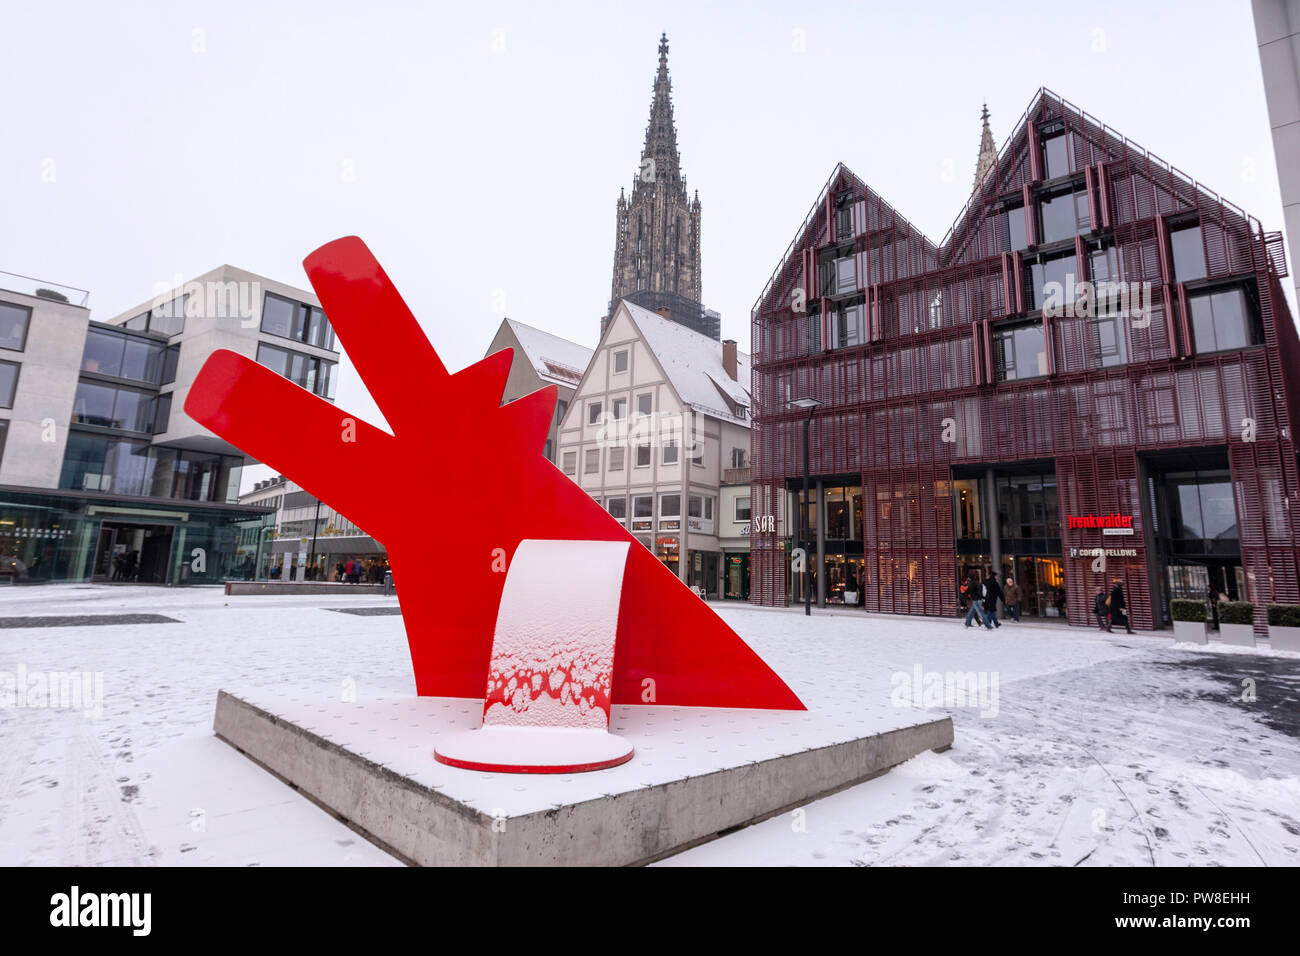 Red Dog, Roter Hund by Keith Haring, sculpture in Hans-und-Sophie-Scholl-Platz,  Ulm, Baden-Württemberg, Germany - Stock Image